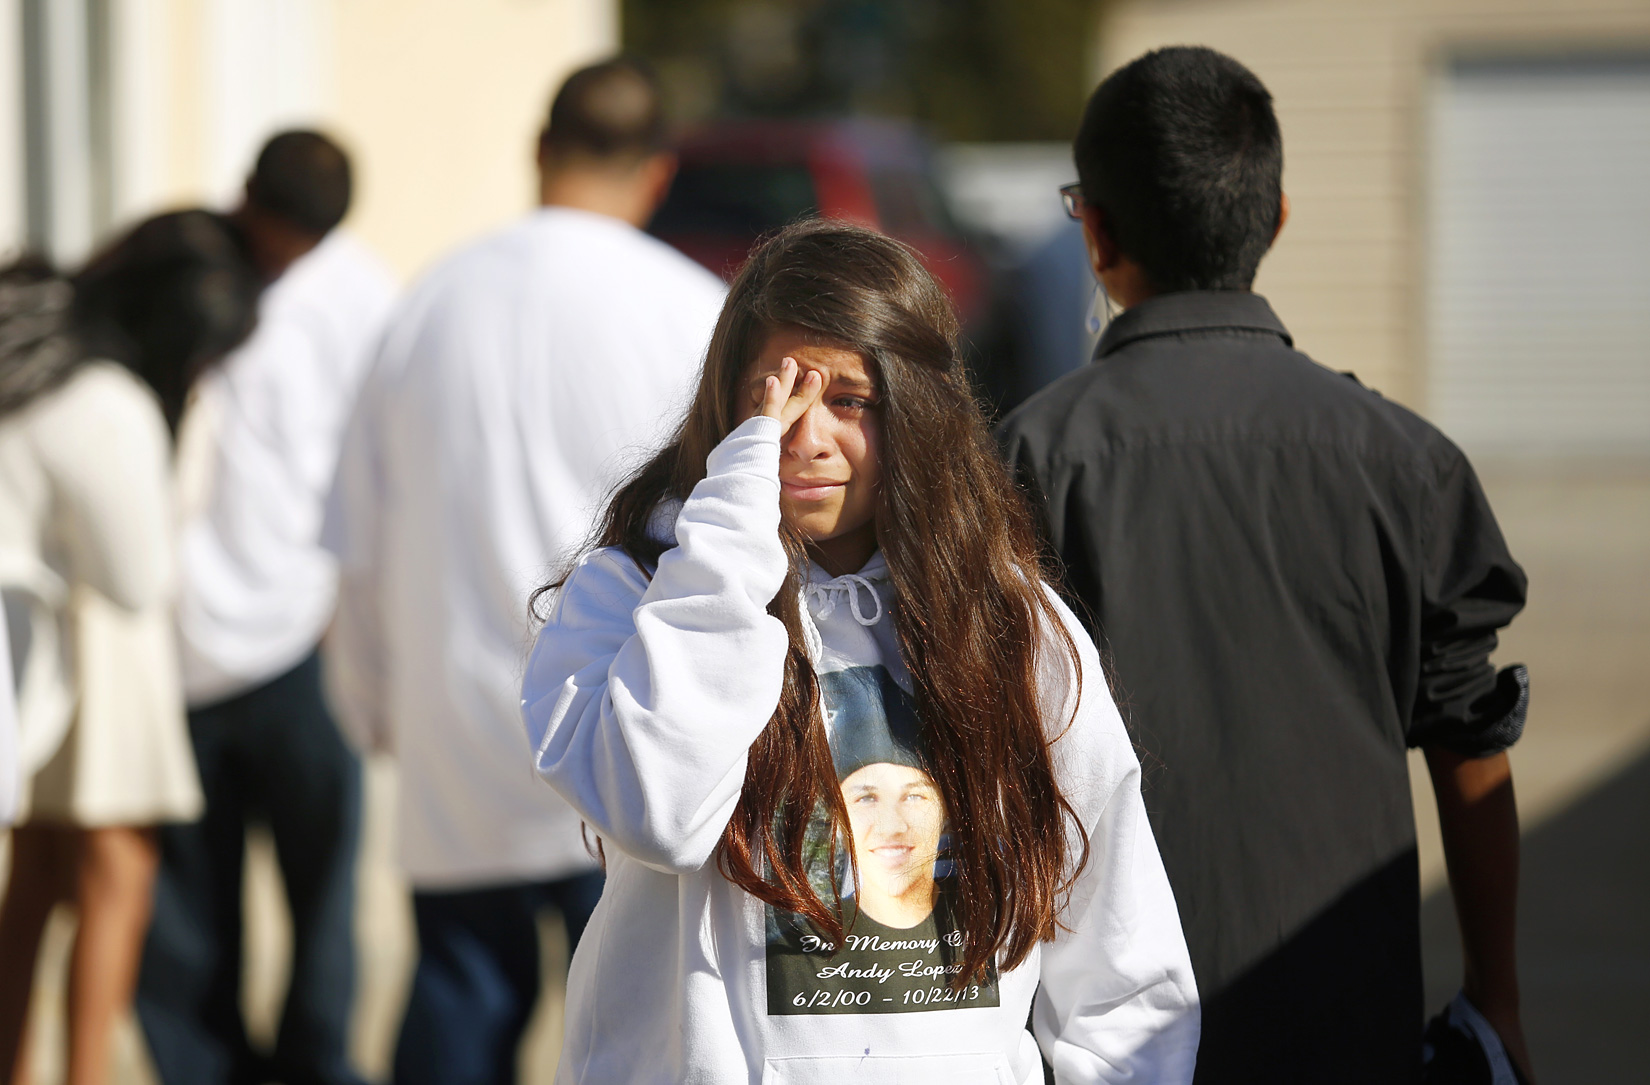 Aliyah Martinez wipes away tears after leaving a memorial service and viewing of Andy Lopez at the Windsor-Healdsburg Mortuary on Sunday afternoon in Windsor, October 27, 2013. (Conner Jay/The Press Democrat)